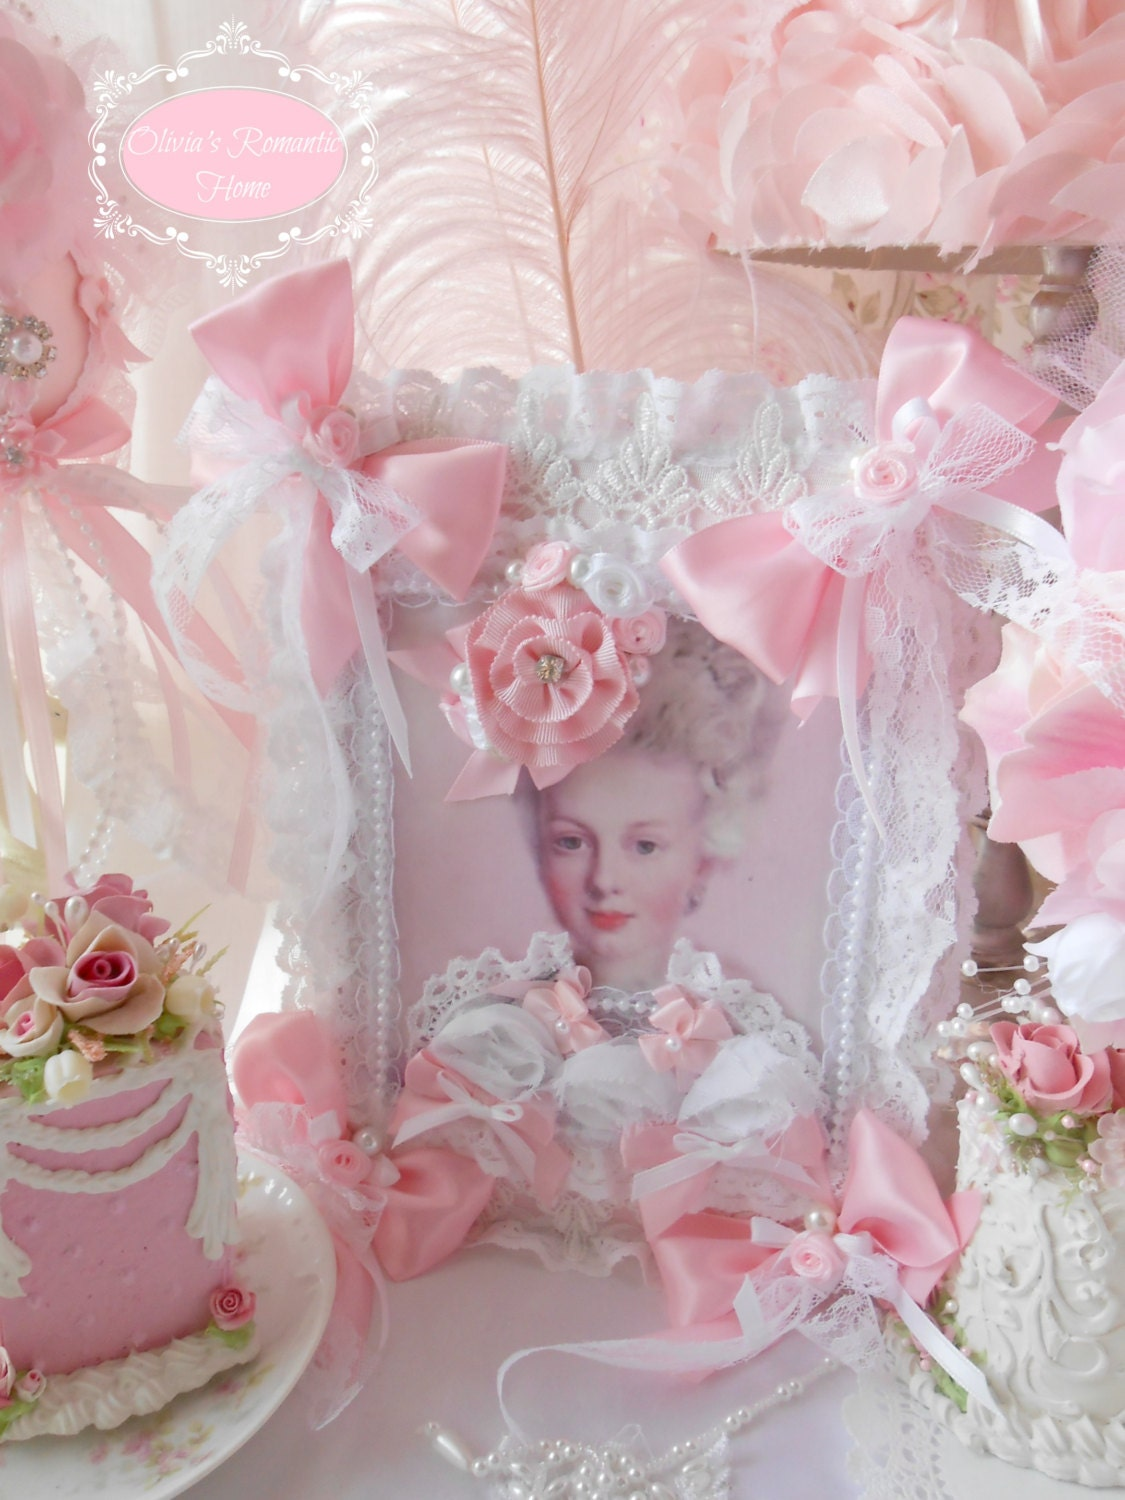 Pink Princess Victorian Lady Marie Antoinette Journal Coffee Table Book Pink Satin Rose Bridal Lace Shabby Chic French Altered art